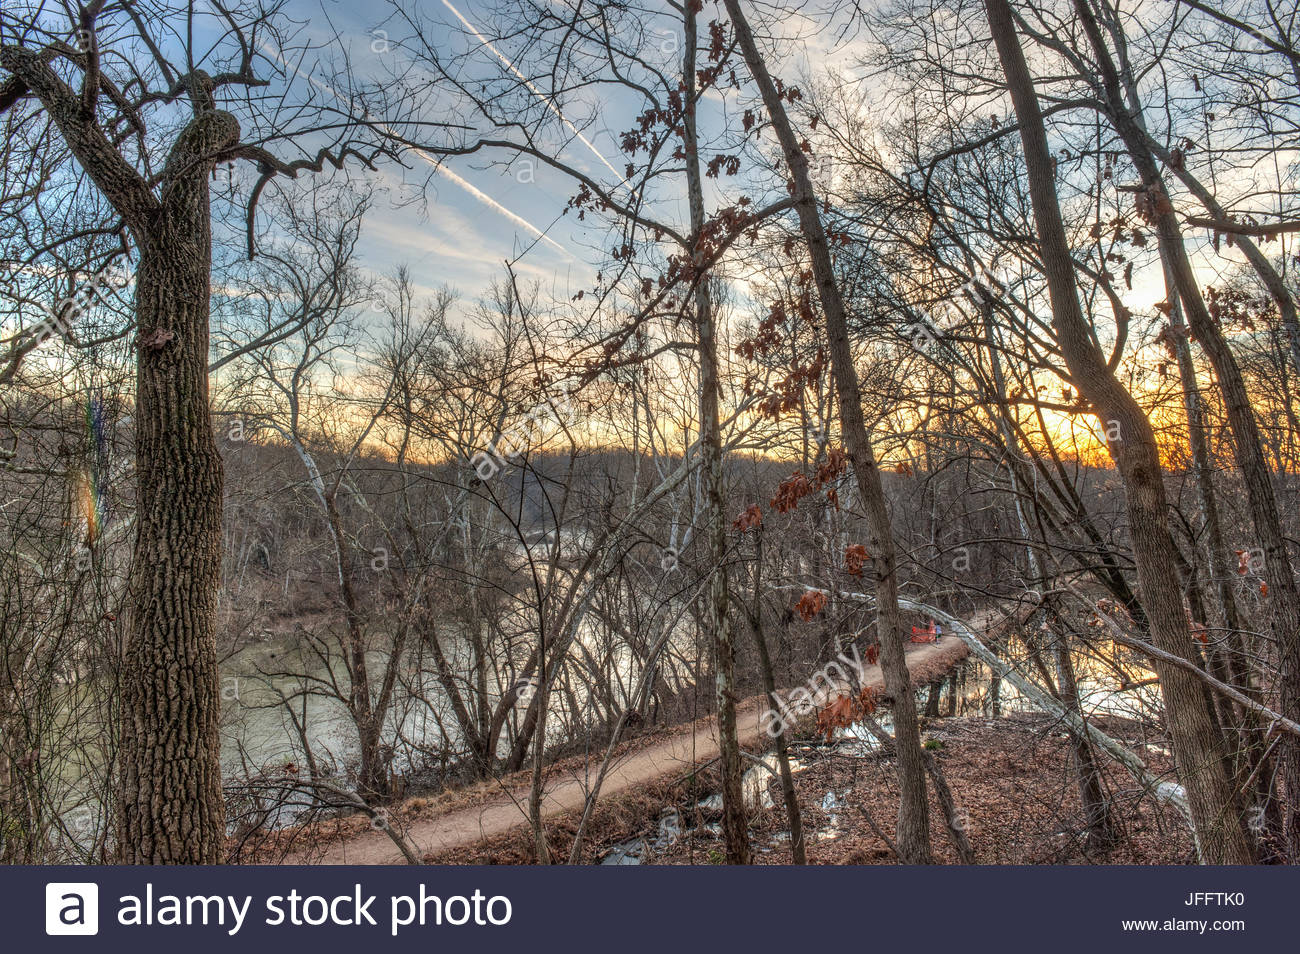 A scenic view along the Chesapeake and Ohio Canal towpath. - Stock Image